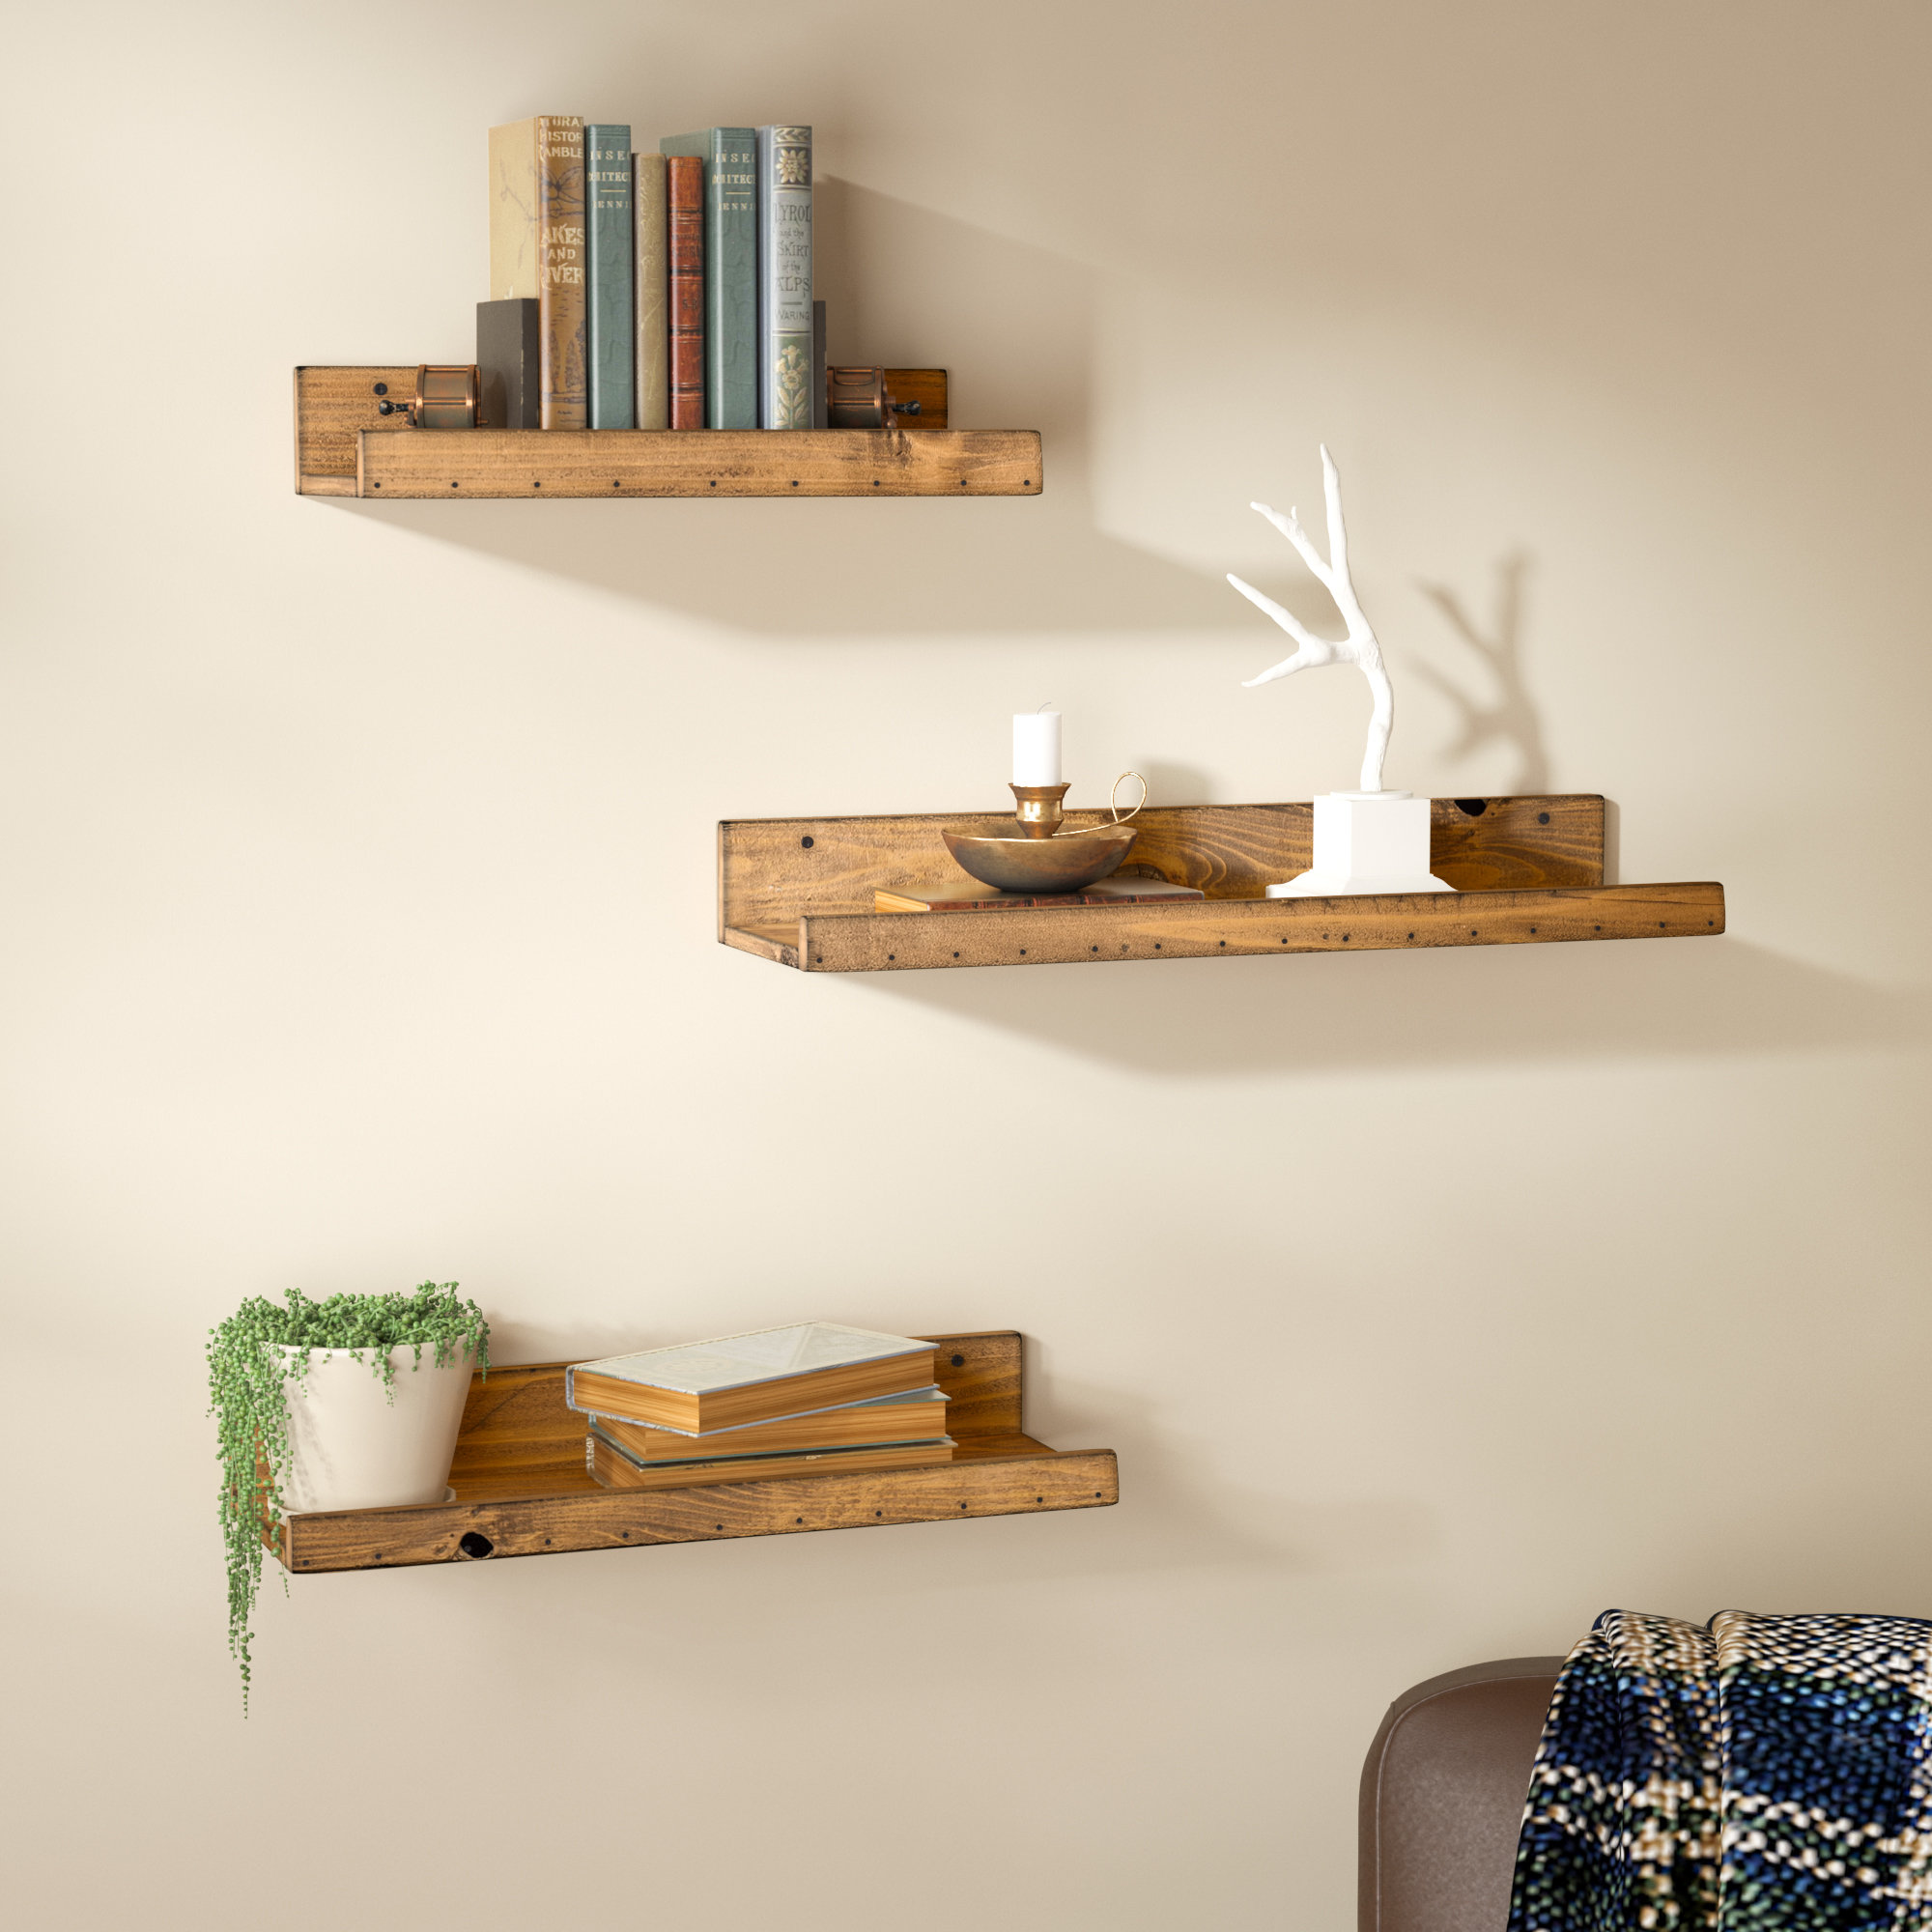 dunlap rustic piece floating shelf set reviews birch lane wood shelves living room command adhesive tape inexpensive wall shelving ideas movable kitchen long computer desk with